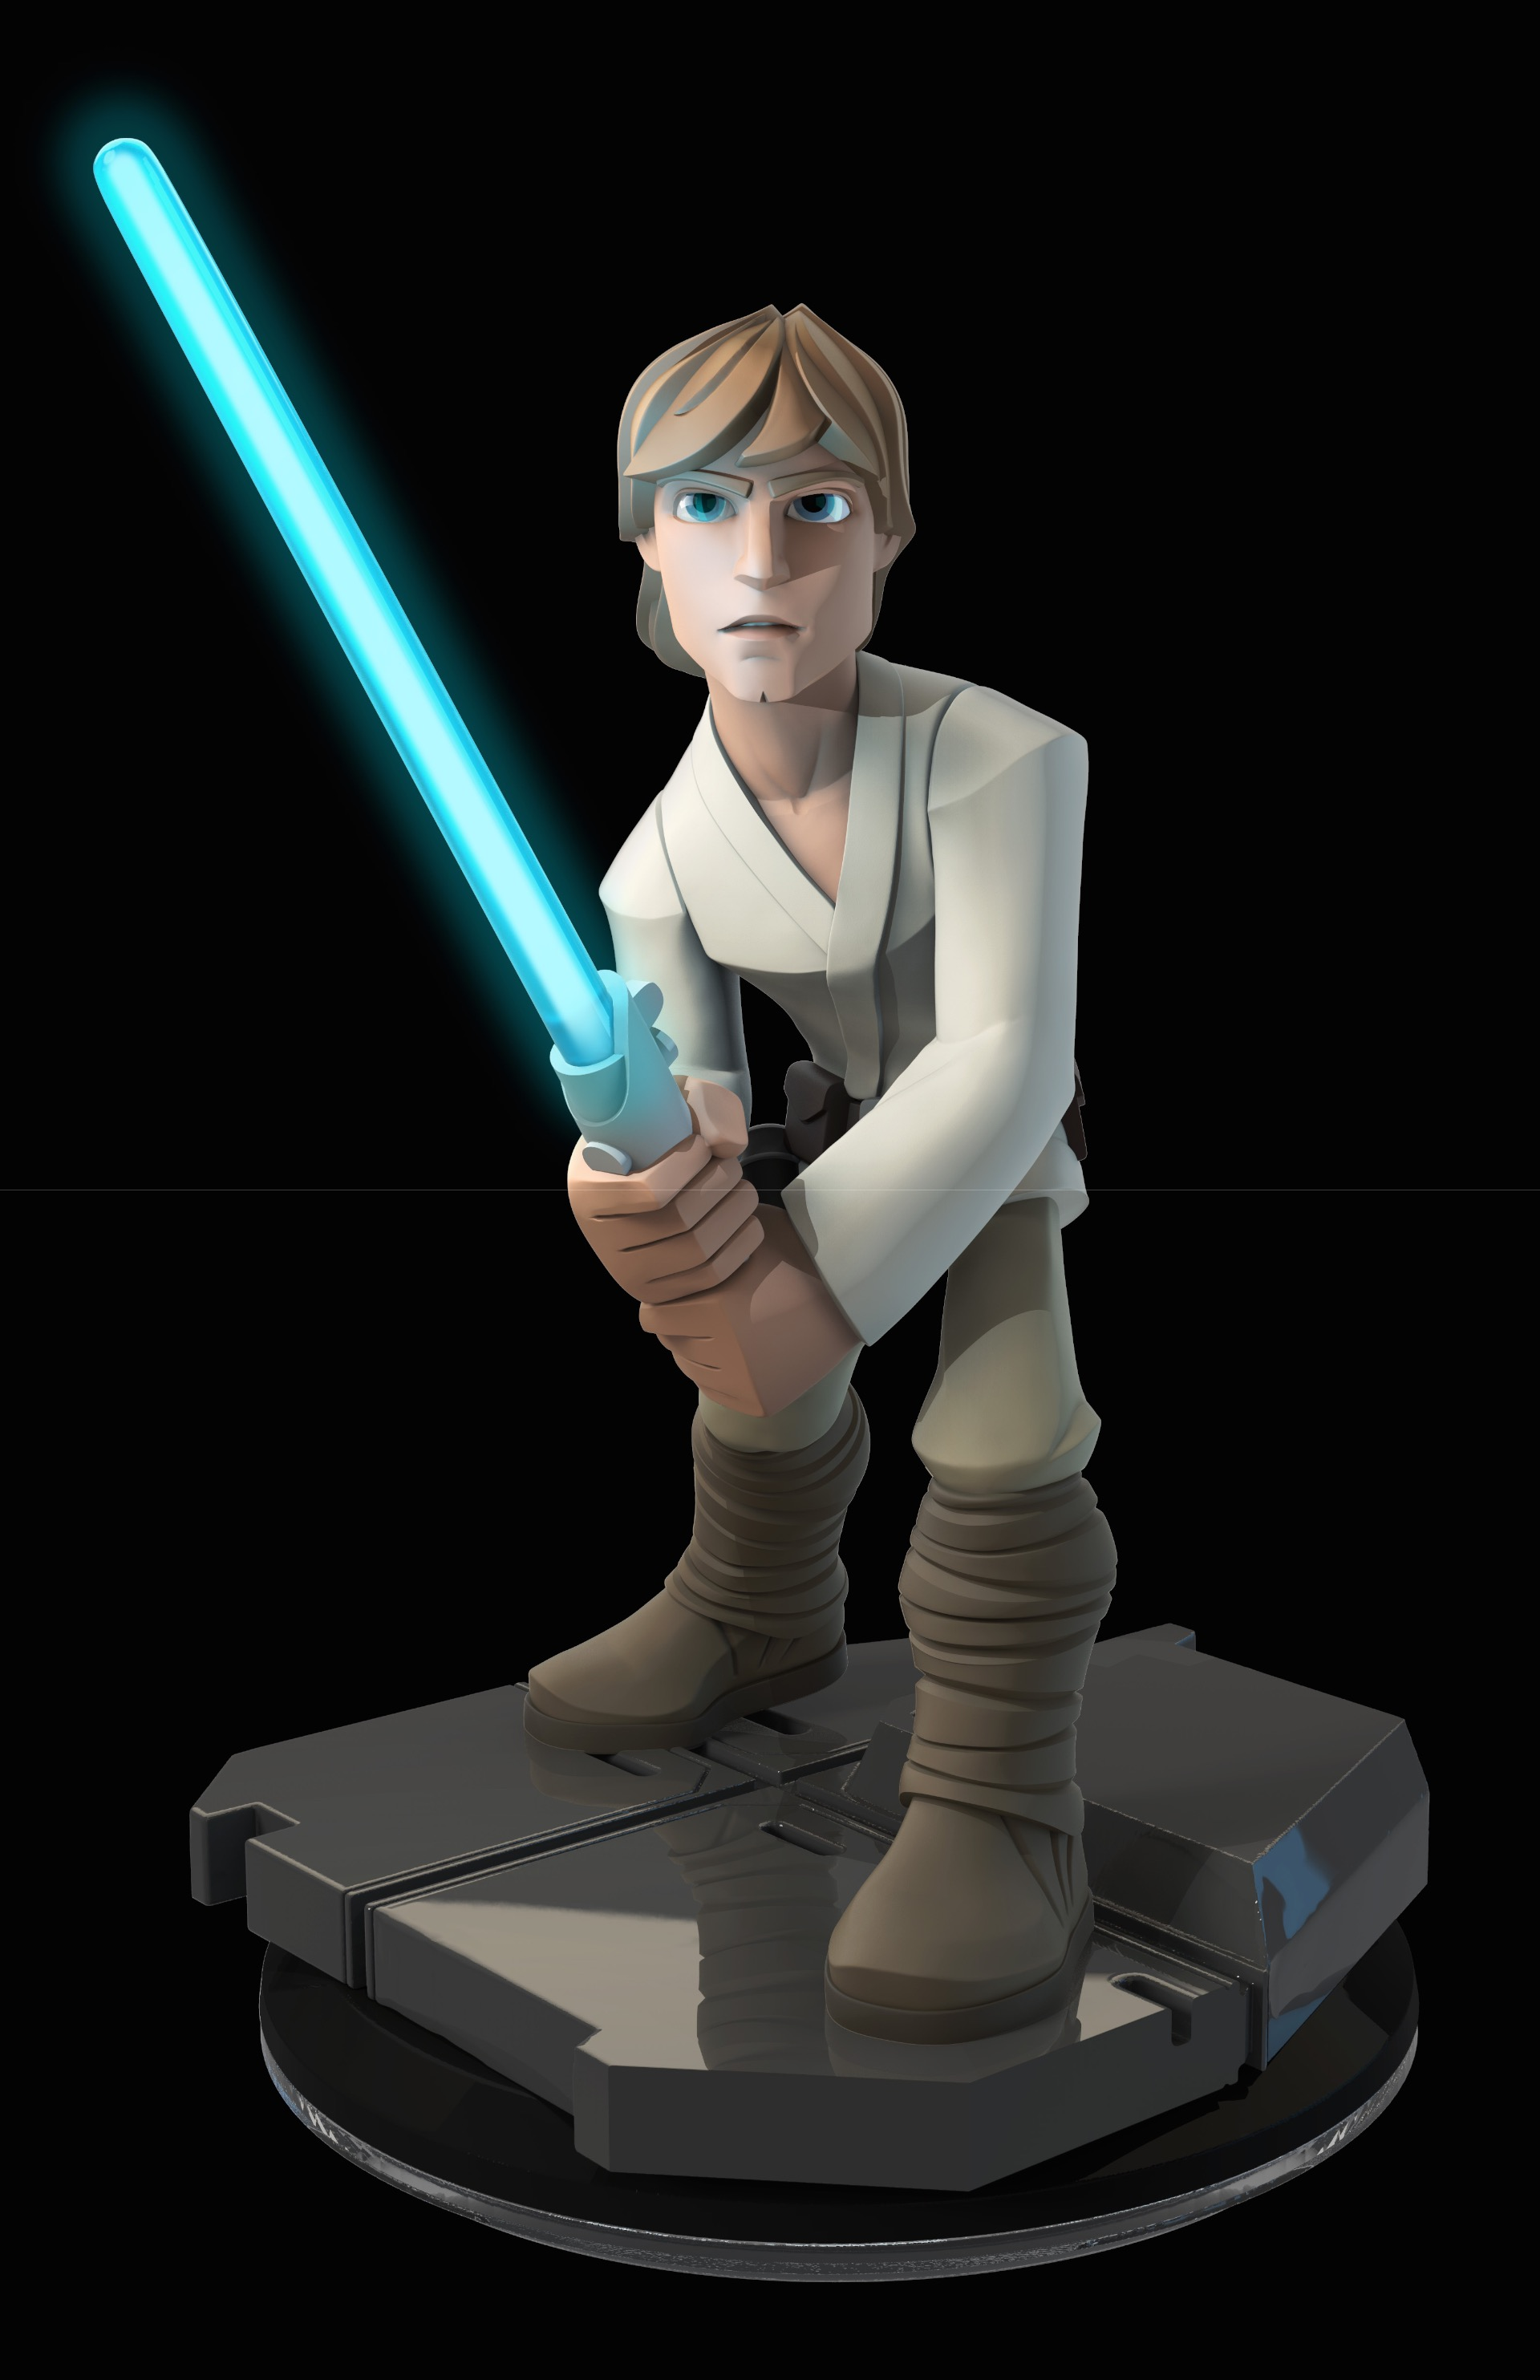 Disney Infinity 3.0 Star Wars Light FX Characters Revealed ...